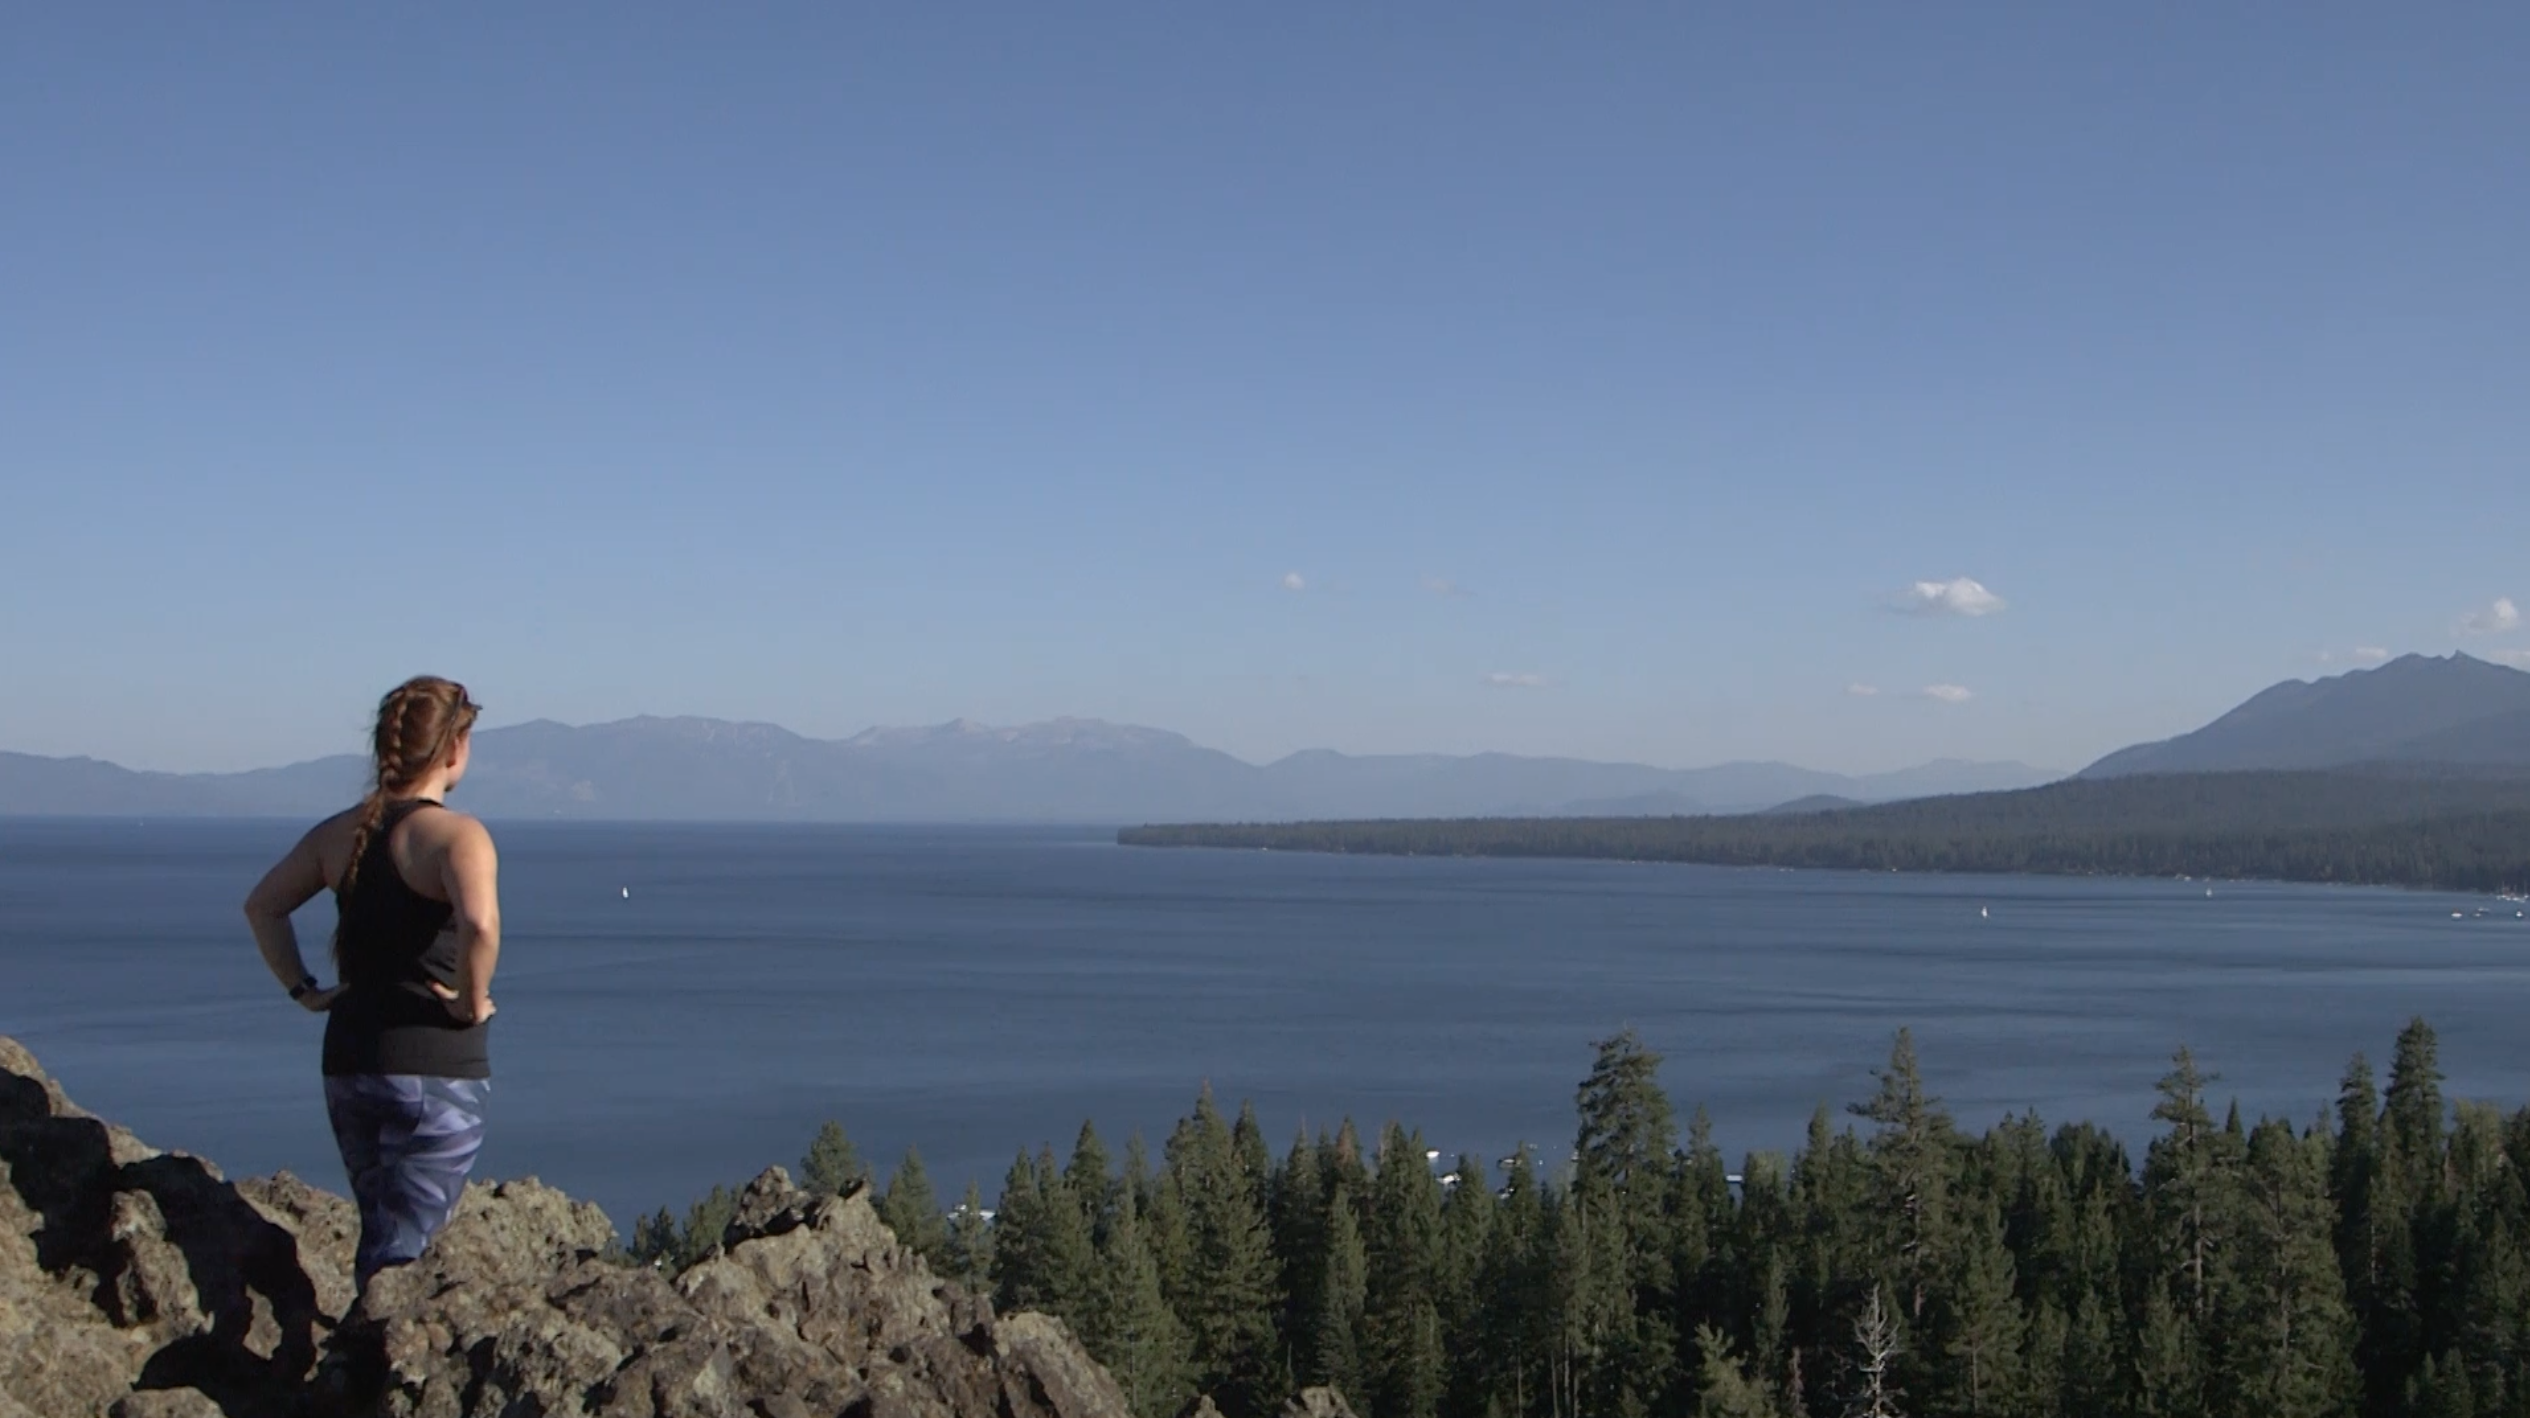 Woman gazing out over Lake Tahoe, CA